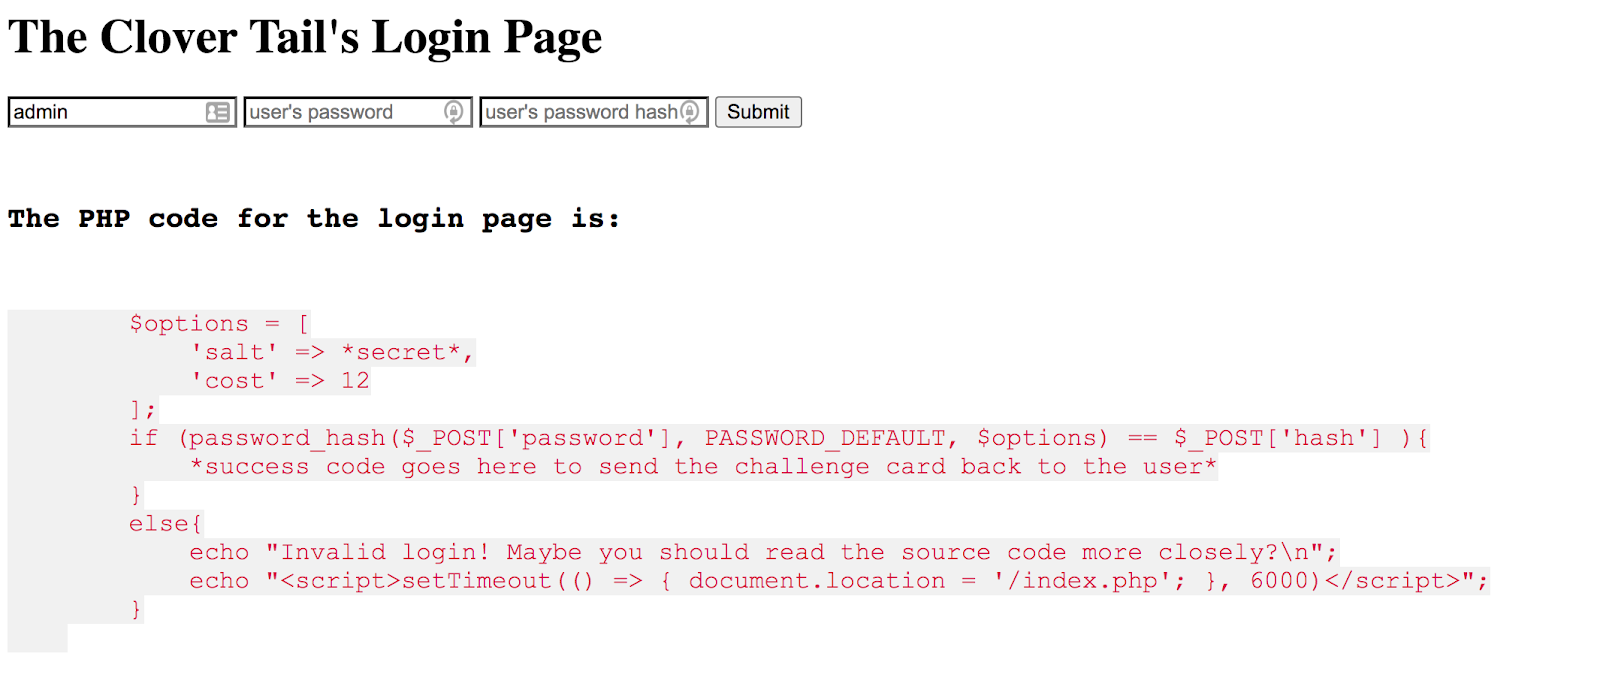 Screenshot of The Clover Tail's Login Page with a log in and PHP code.